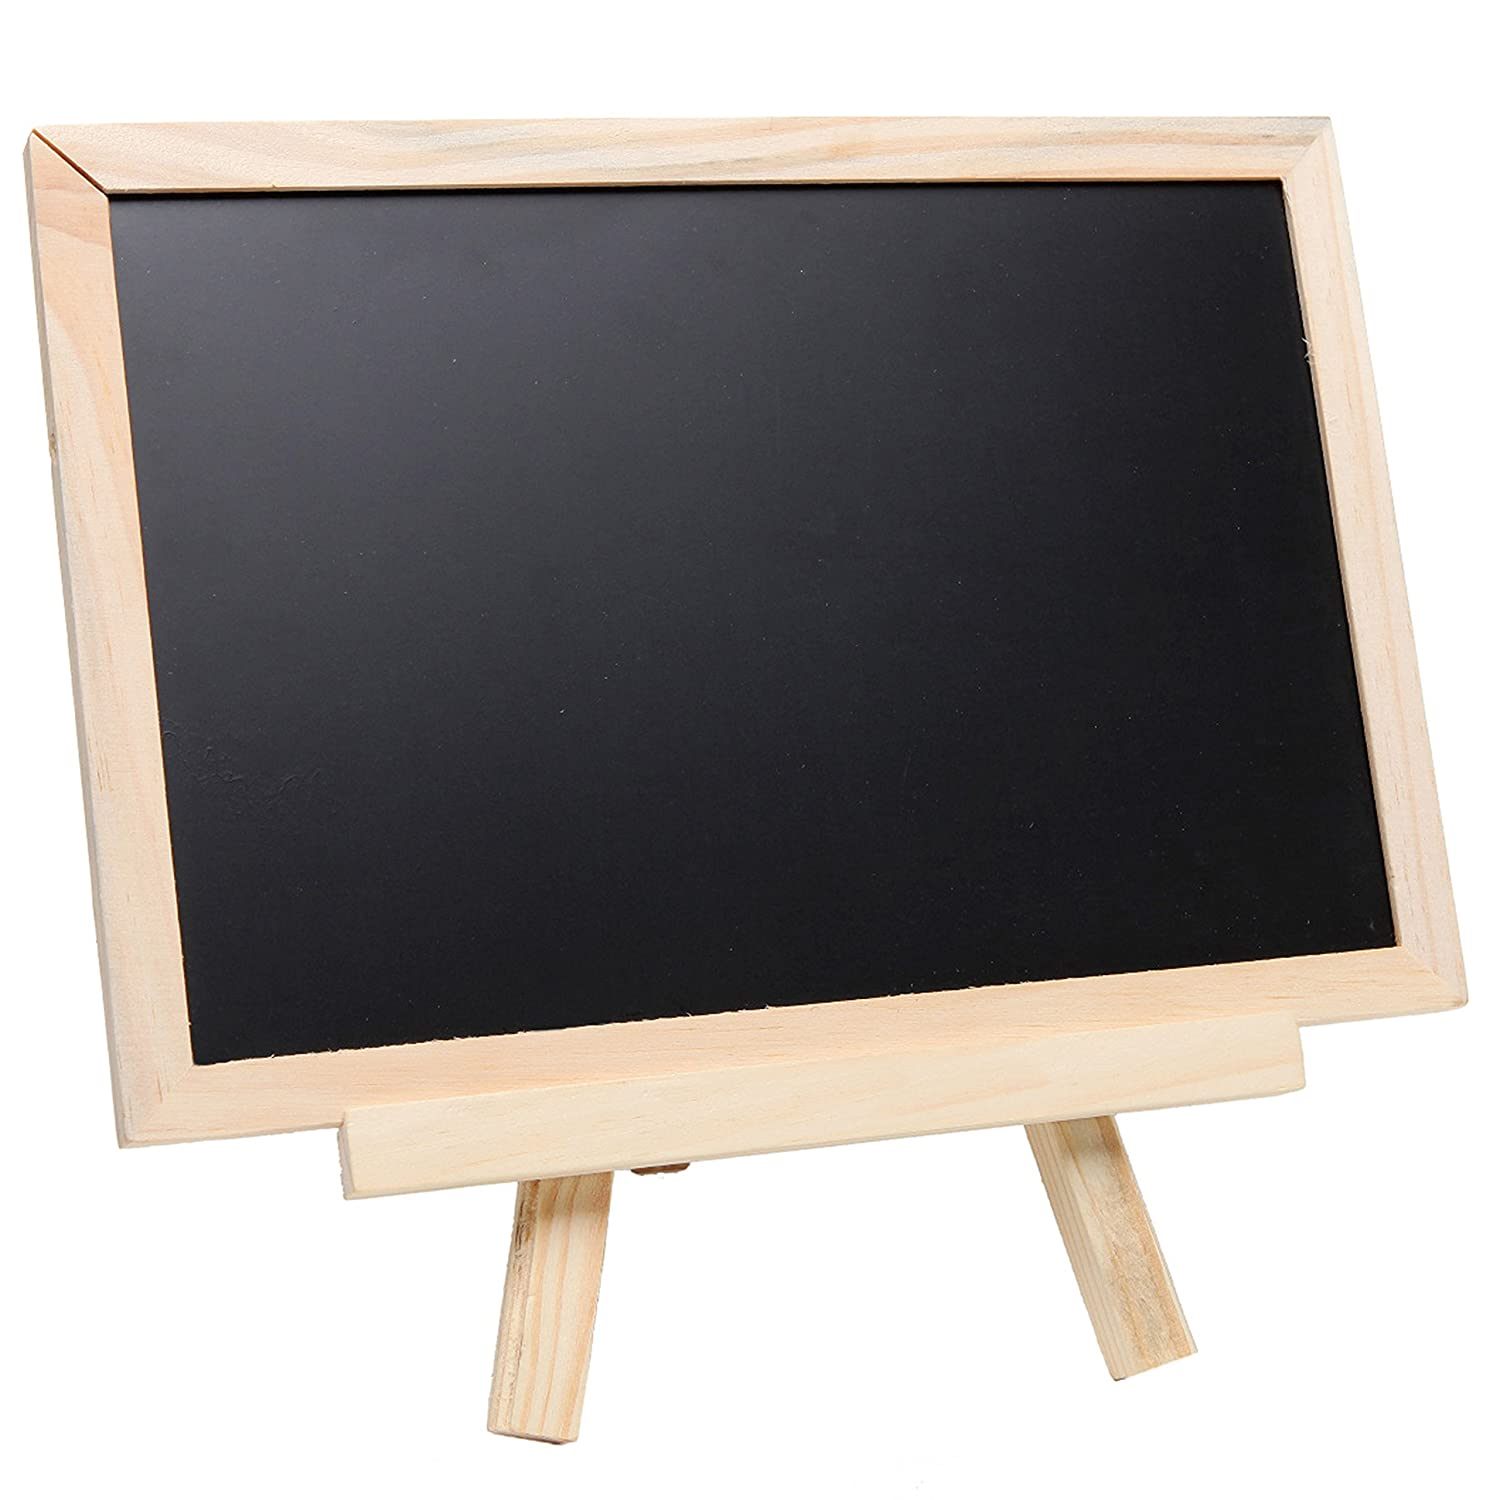 Attractive Amazon.com : MyGift Small Wood Chalkboard Easel, Whiteboard Stand  JA18